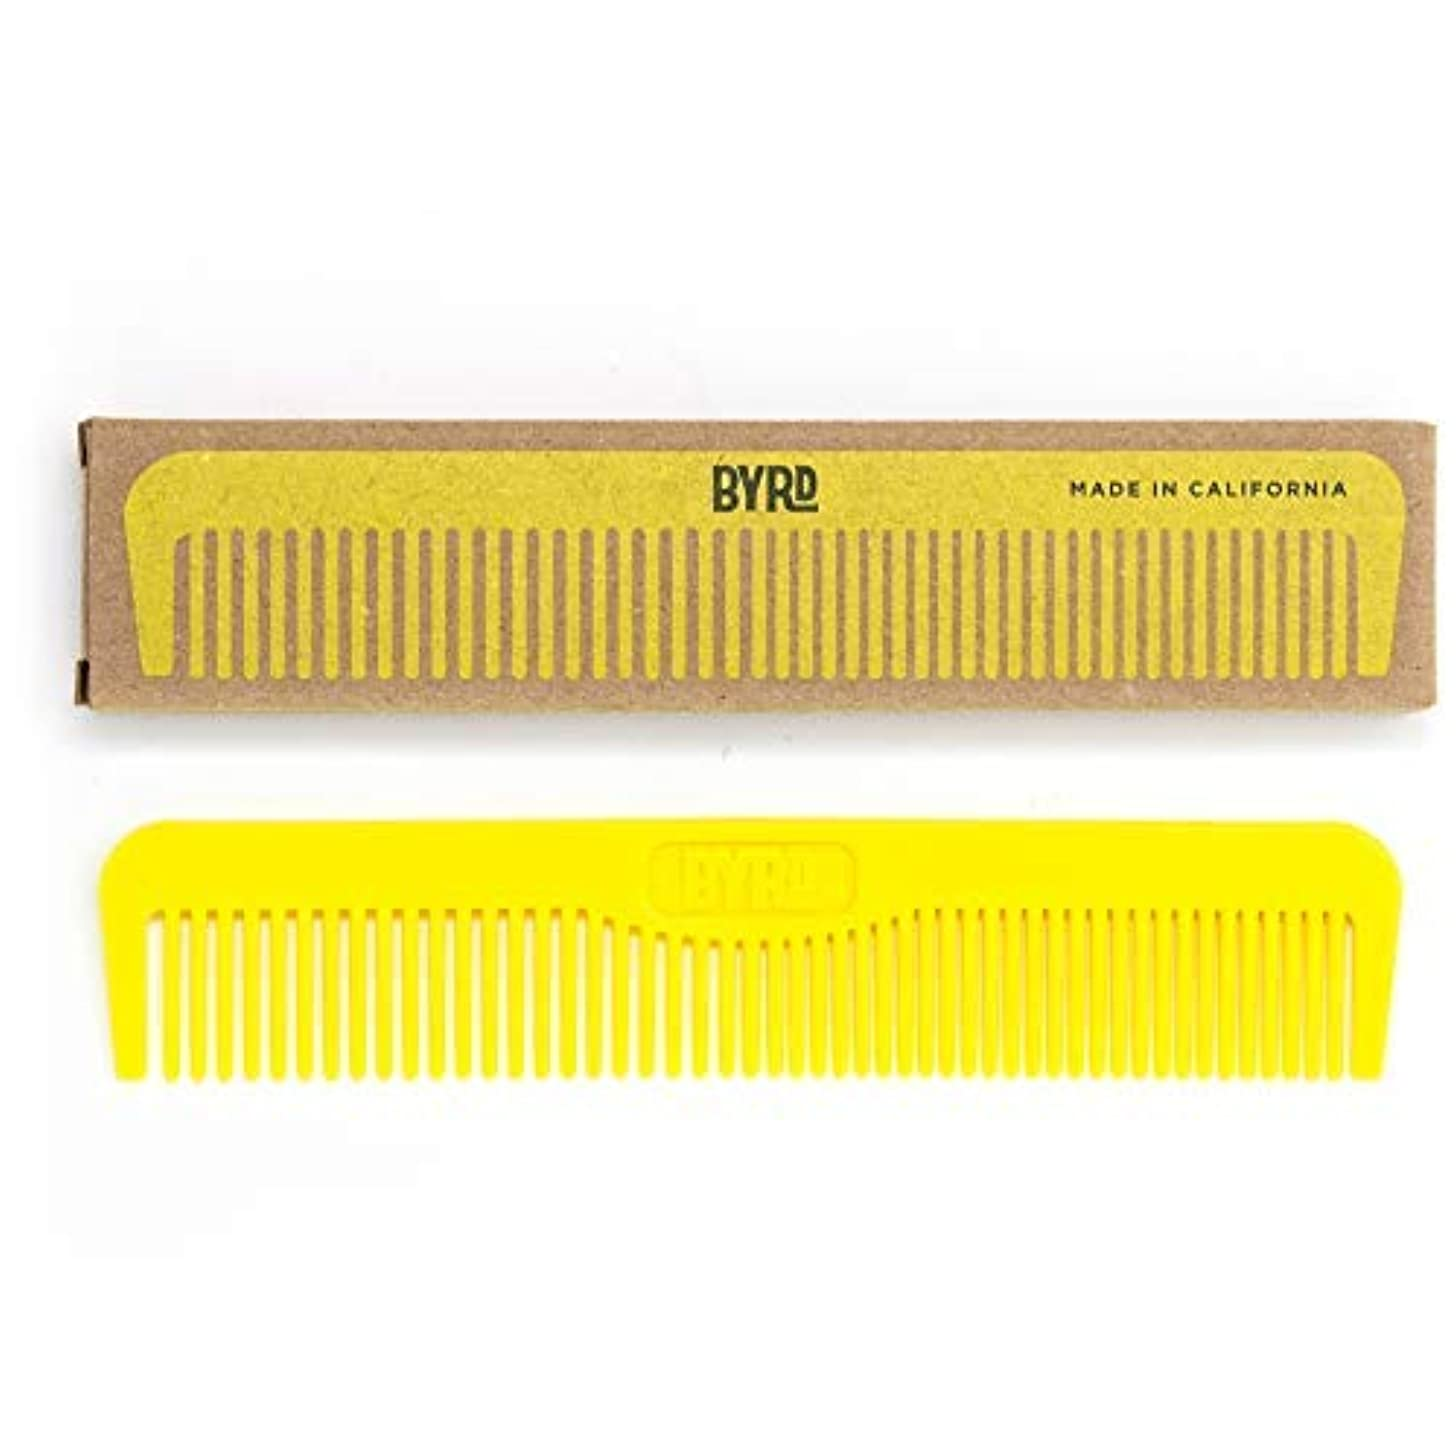 ごみセッティング罪人BYRD Pocket Comb - Durable, Flexible, Tangle Free, Styling Comb, For All Hair Types, Back Pocket Friendly [並行輸入品]